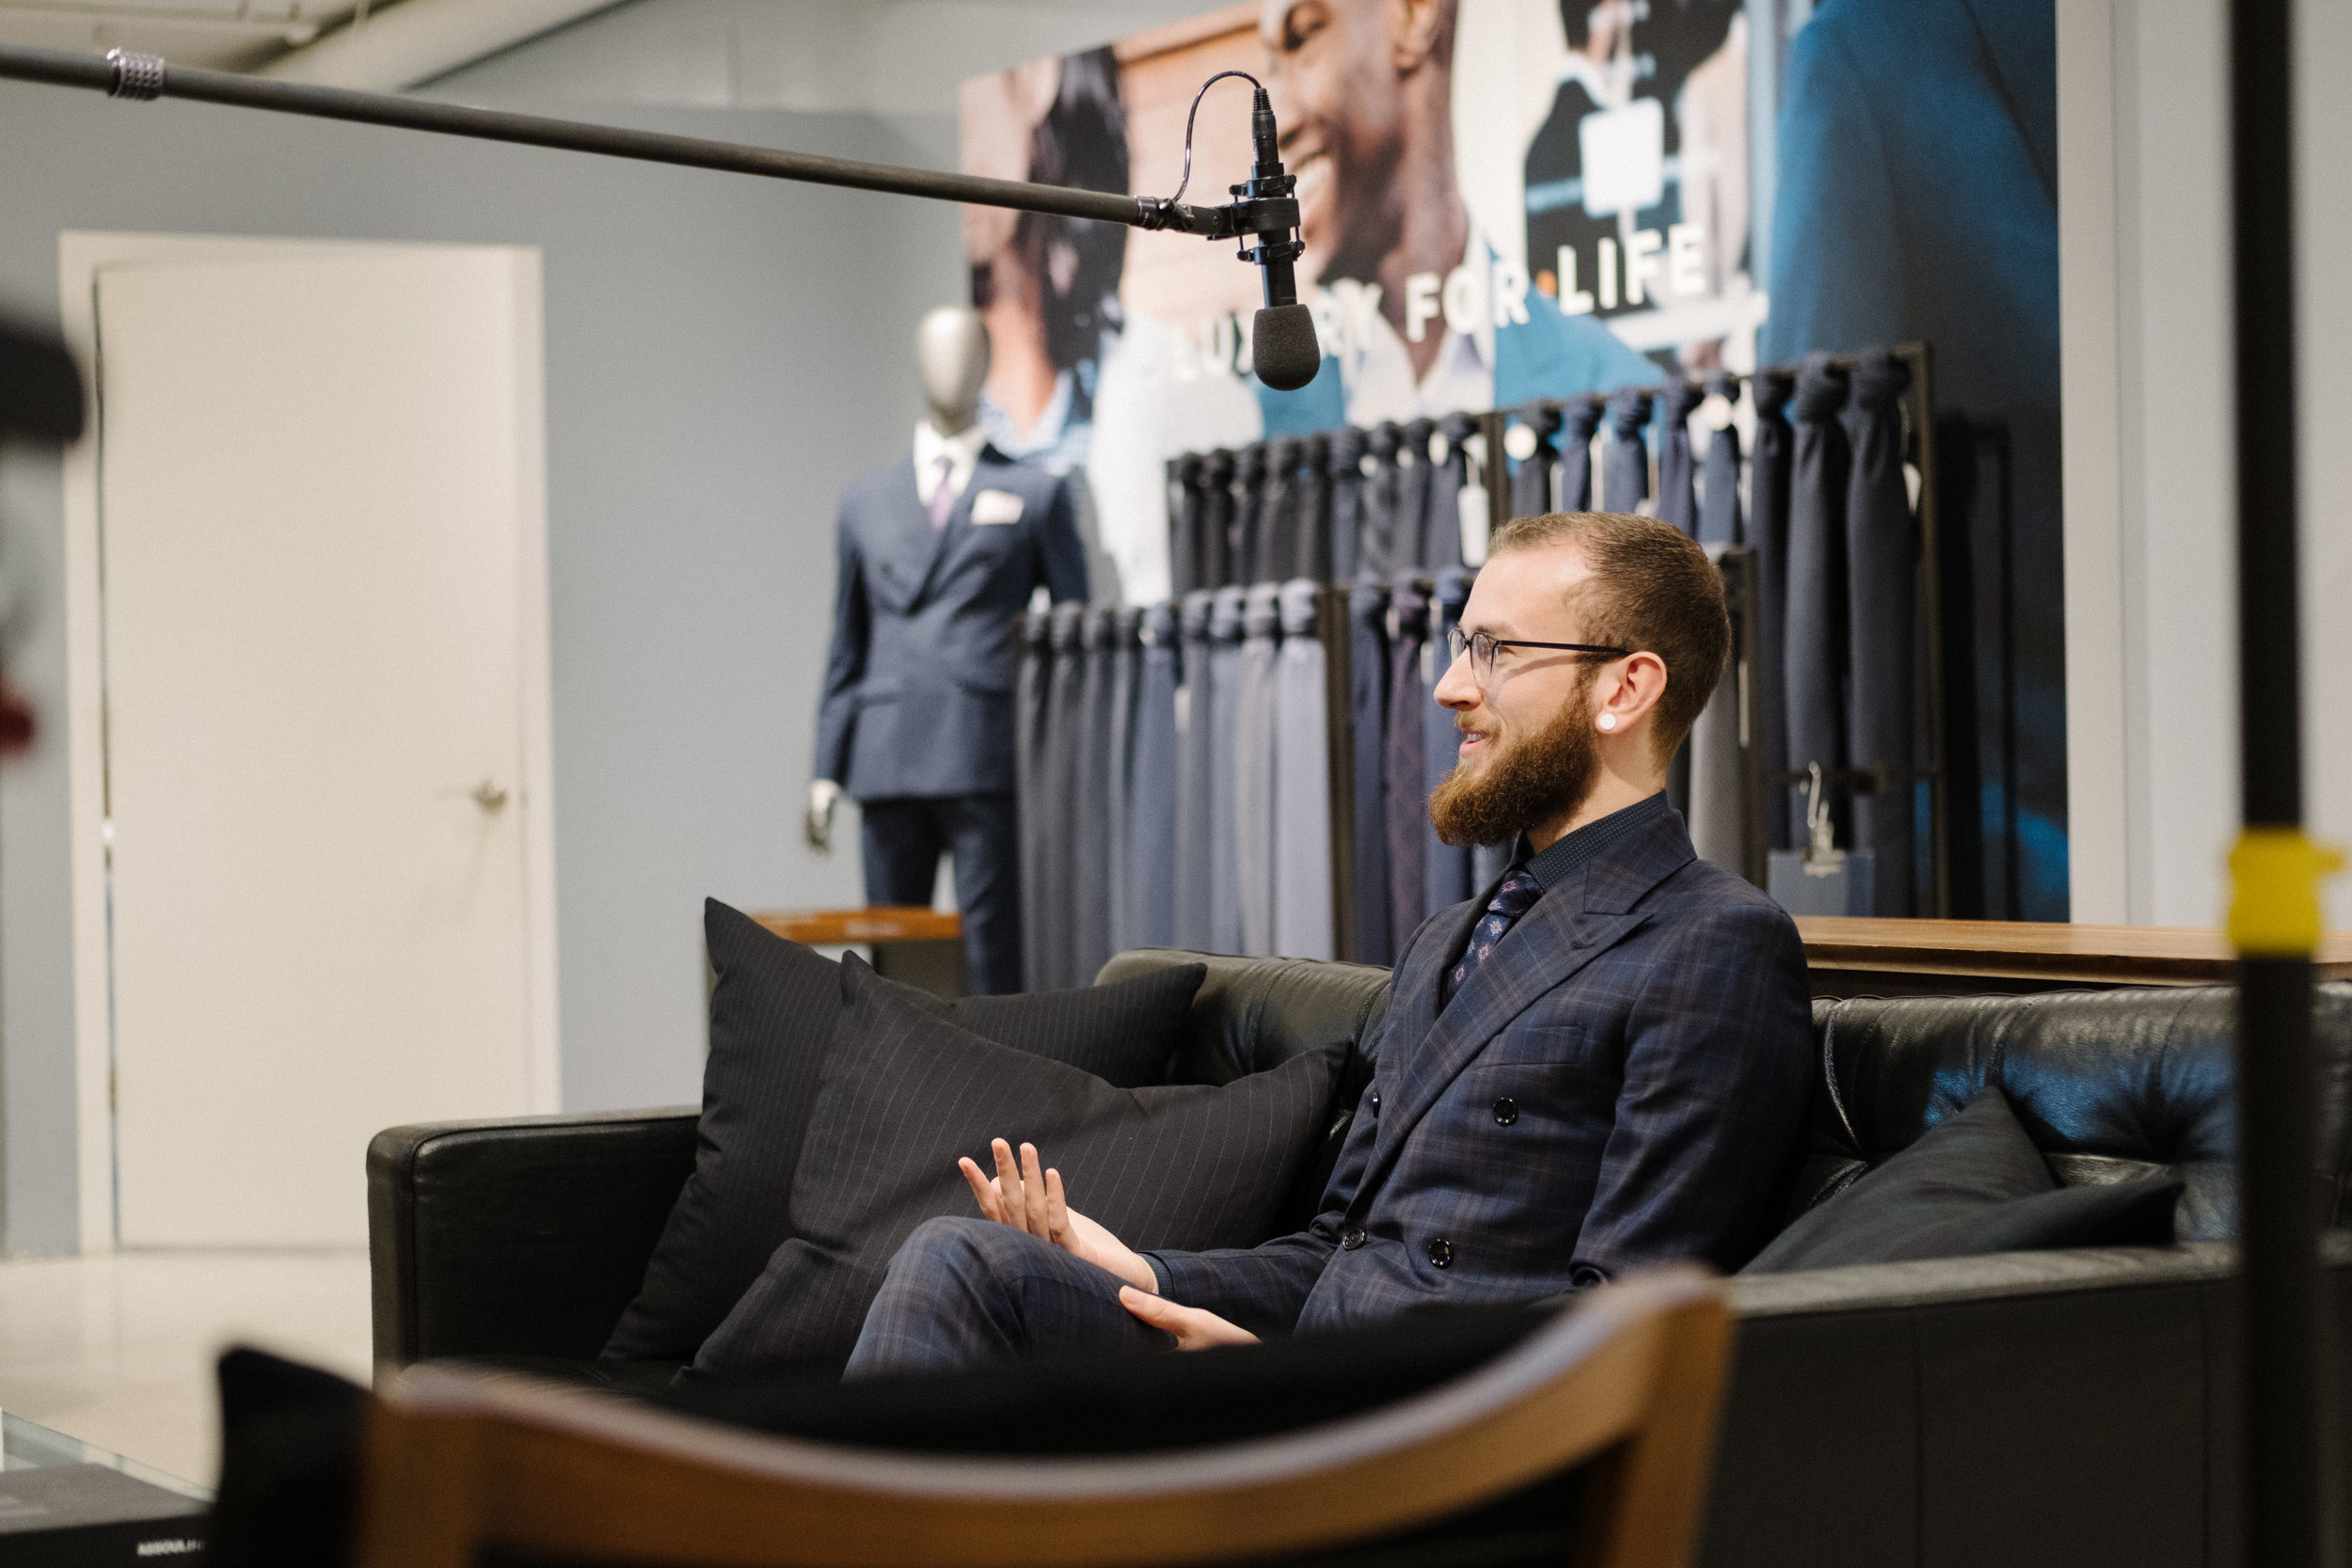 180416_Indochino_F0514-C.jpg